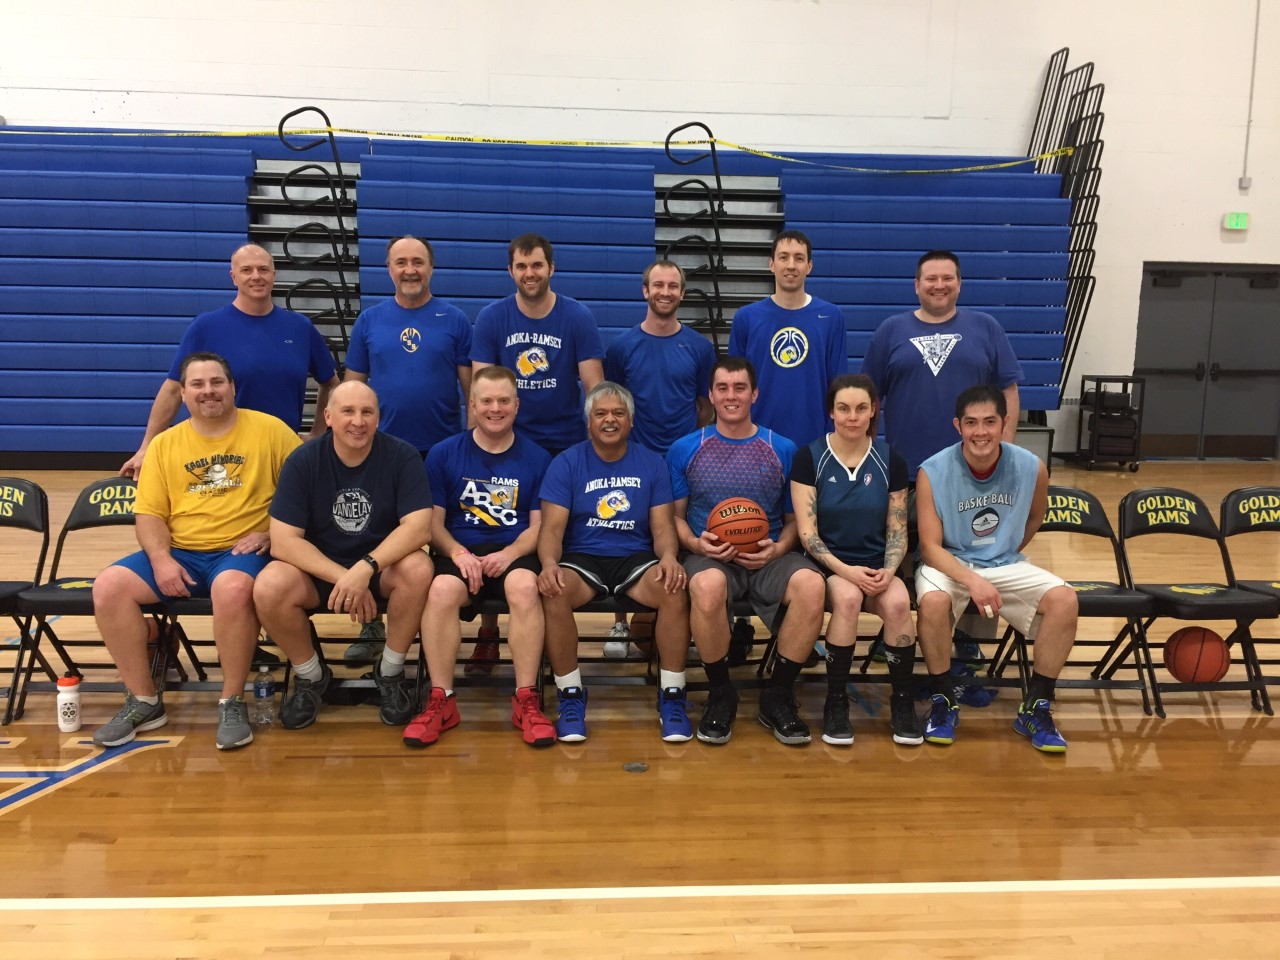 """The winning team poses for a photo after the game. Back row (L to R): John Herbert, Keven Dockter, Aaron Peterson, Michael Buchman, Rory Larson, Jeff Pool Front row (L to R): Bruce Bordwell, Gary Forst, Ryan Olson, Al """"The Hammer"""" Mamaril, Erik Vinh, Melody Hoffmann, Trung Ha"""